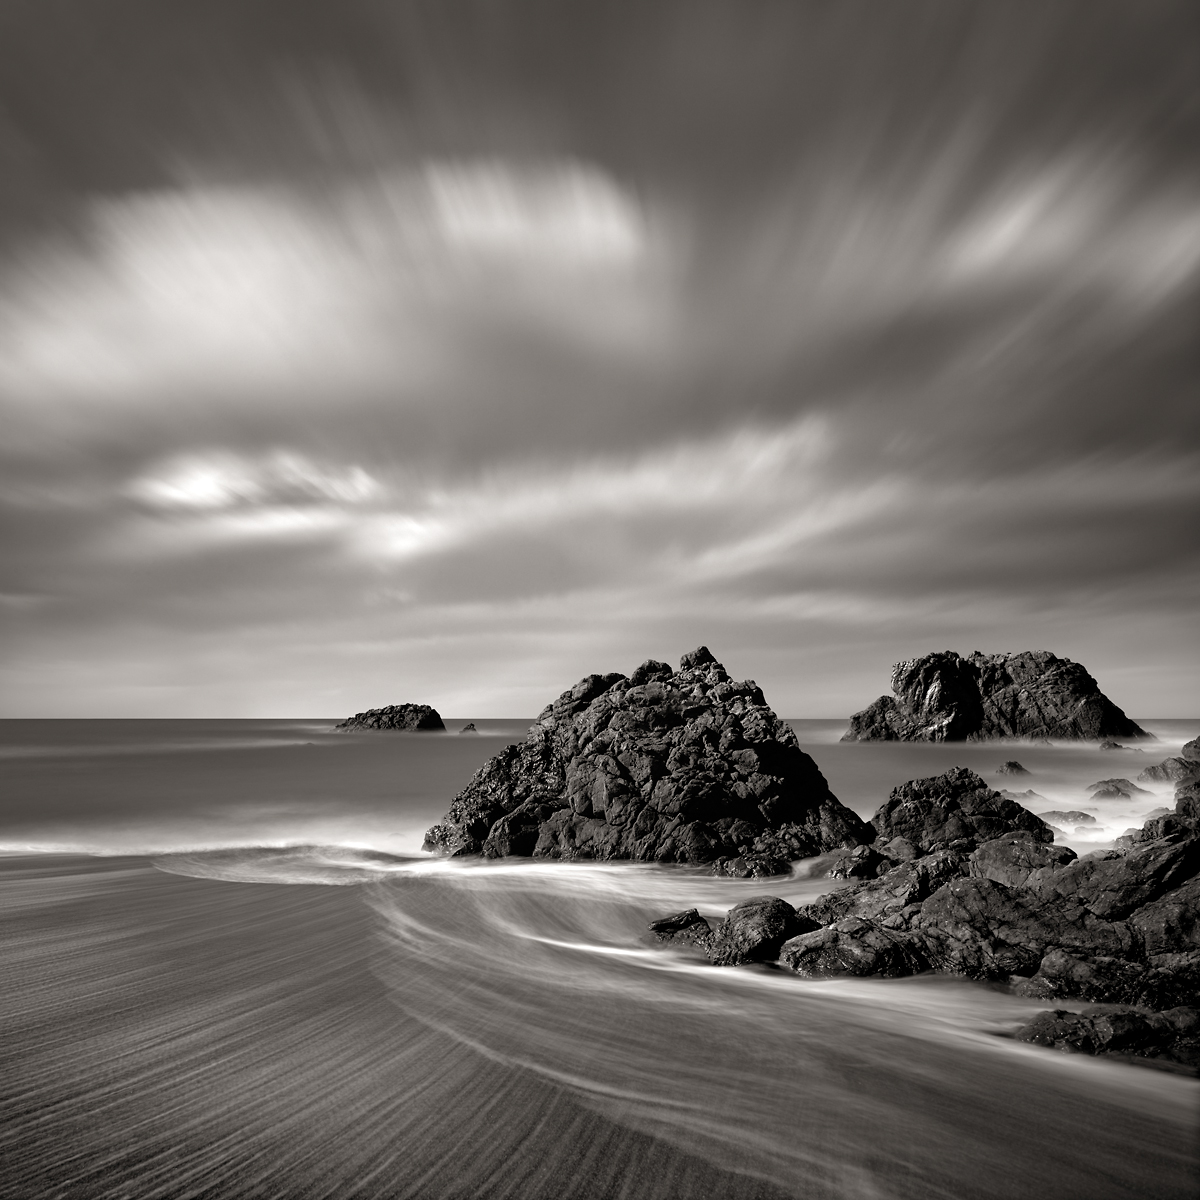 DAVID FOKOS,  Sonoma Coast IV, Sonoma County, California , 2018